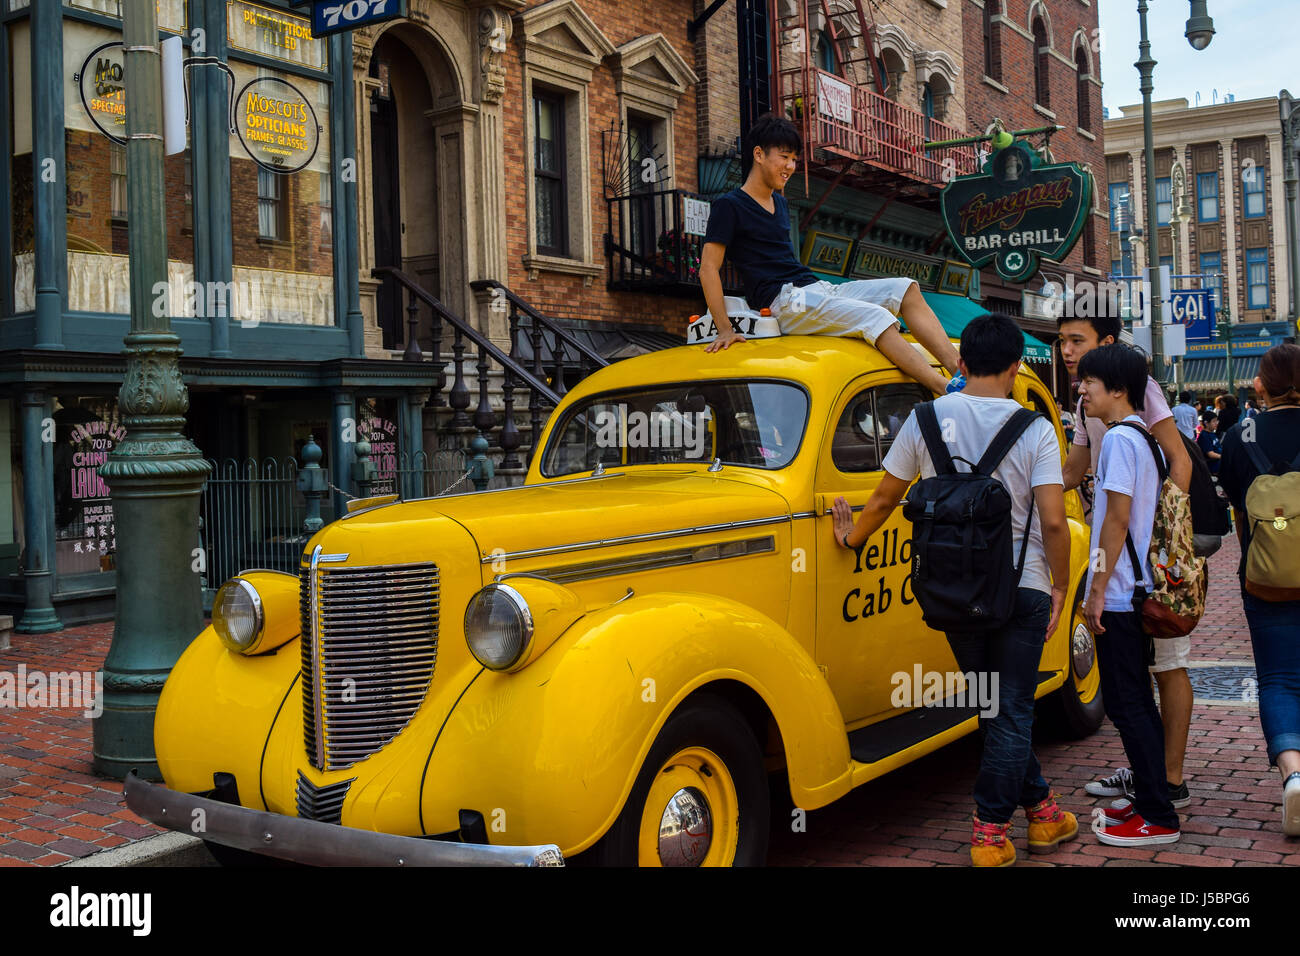 Young boys enjoying a fun Saturday, goofing and playing around a yellow cab with friends in Universal Studios Japan - Stock Image